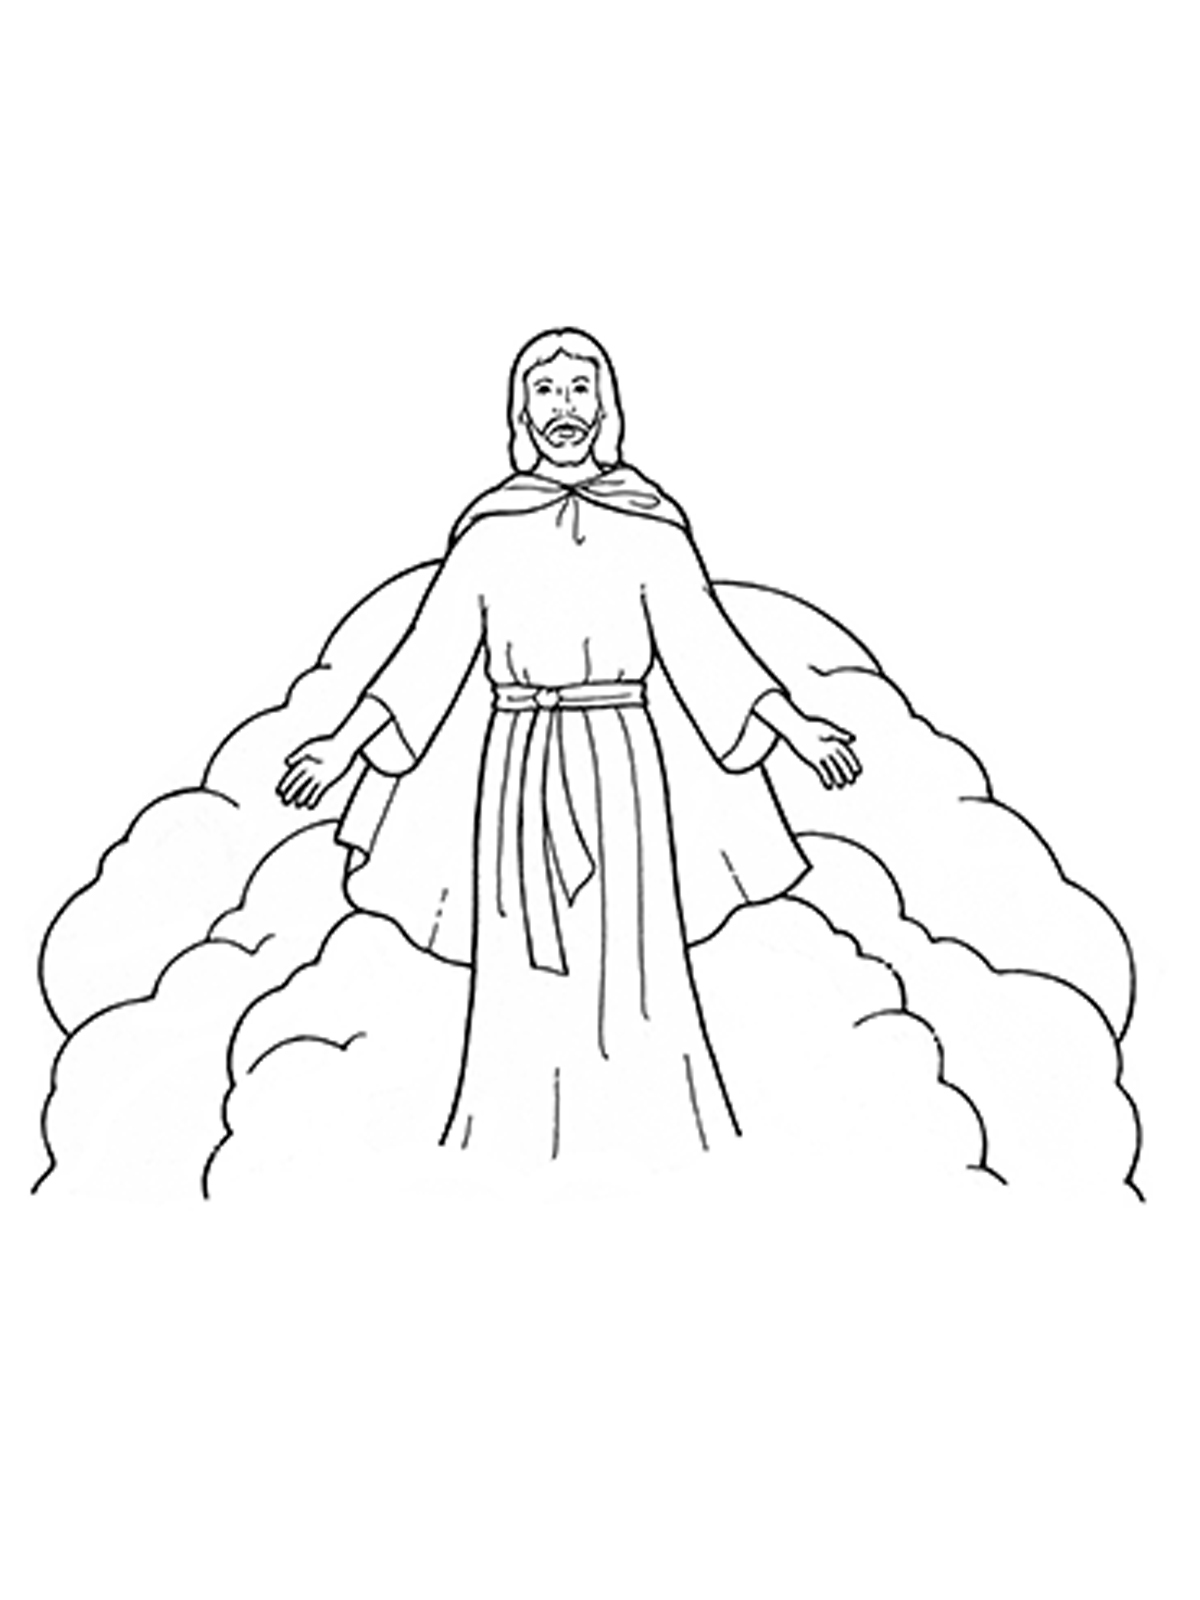 return of jesus coloring pages - photo#23